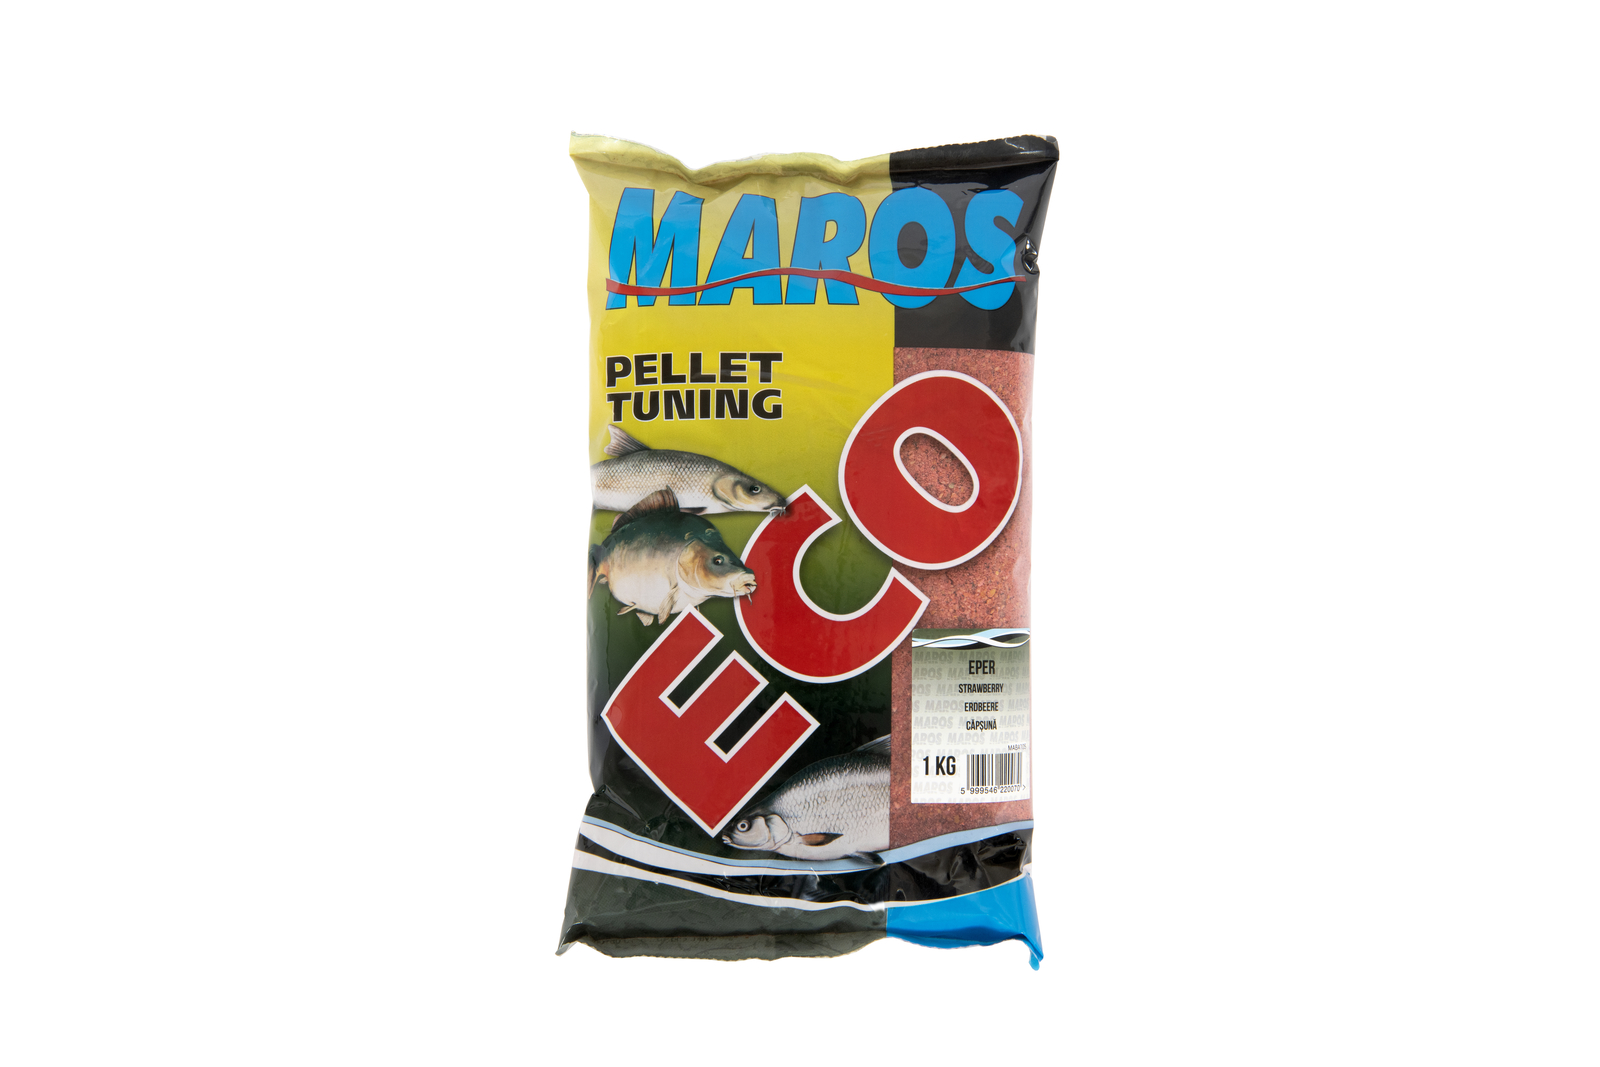 MAROS MIX SERIES ECO 1KG